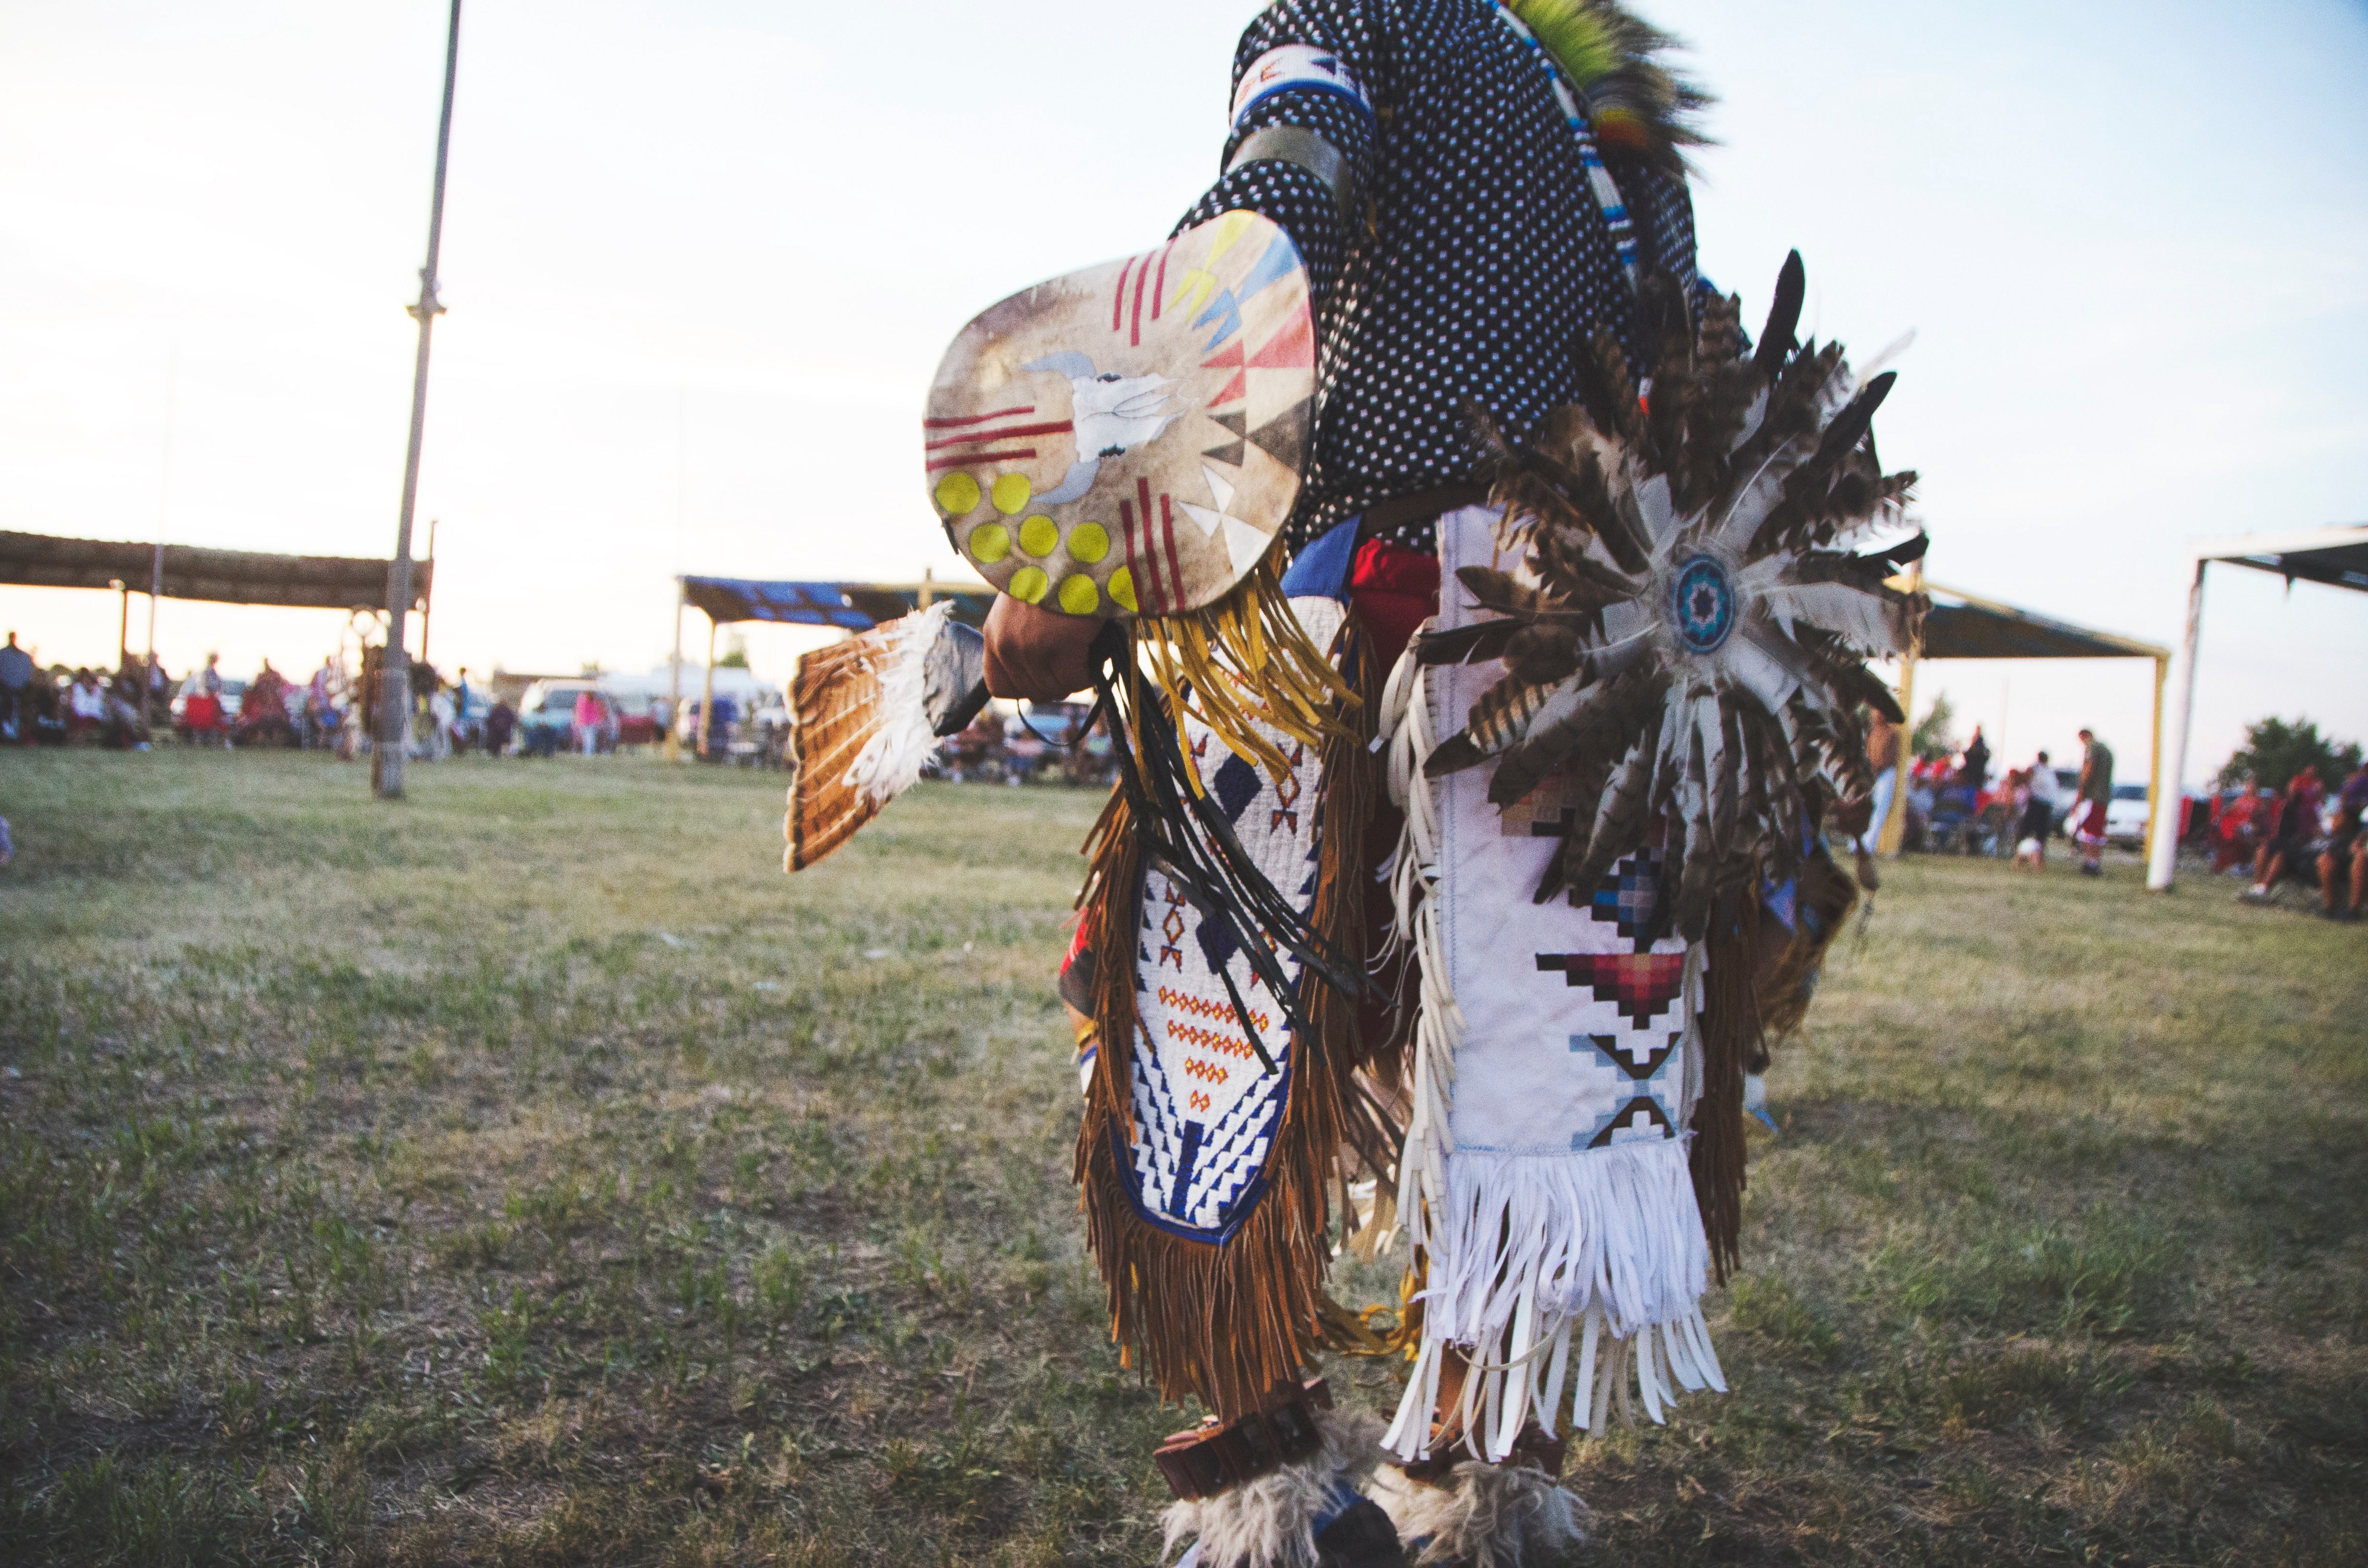 A Native American dancer seen partially from behind, wearing colorful PowWow regalia.